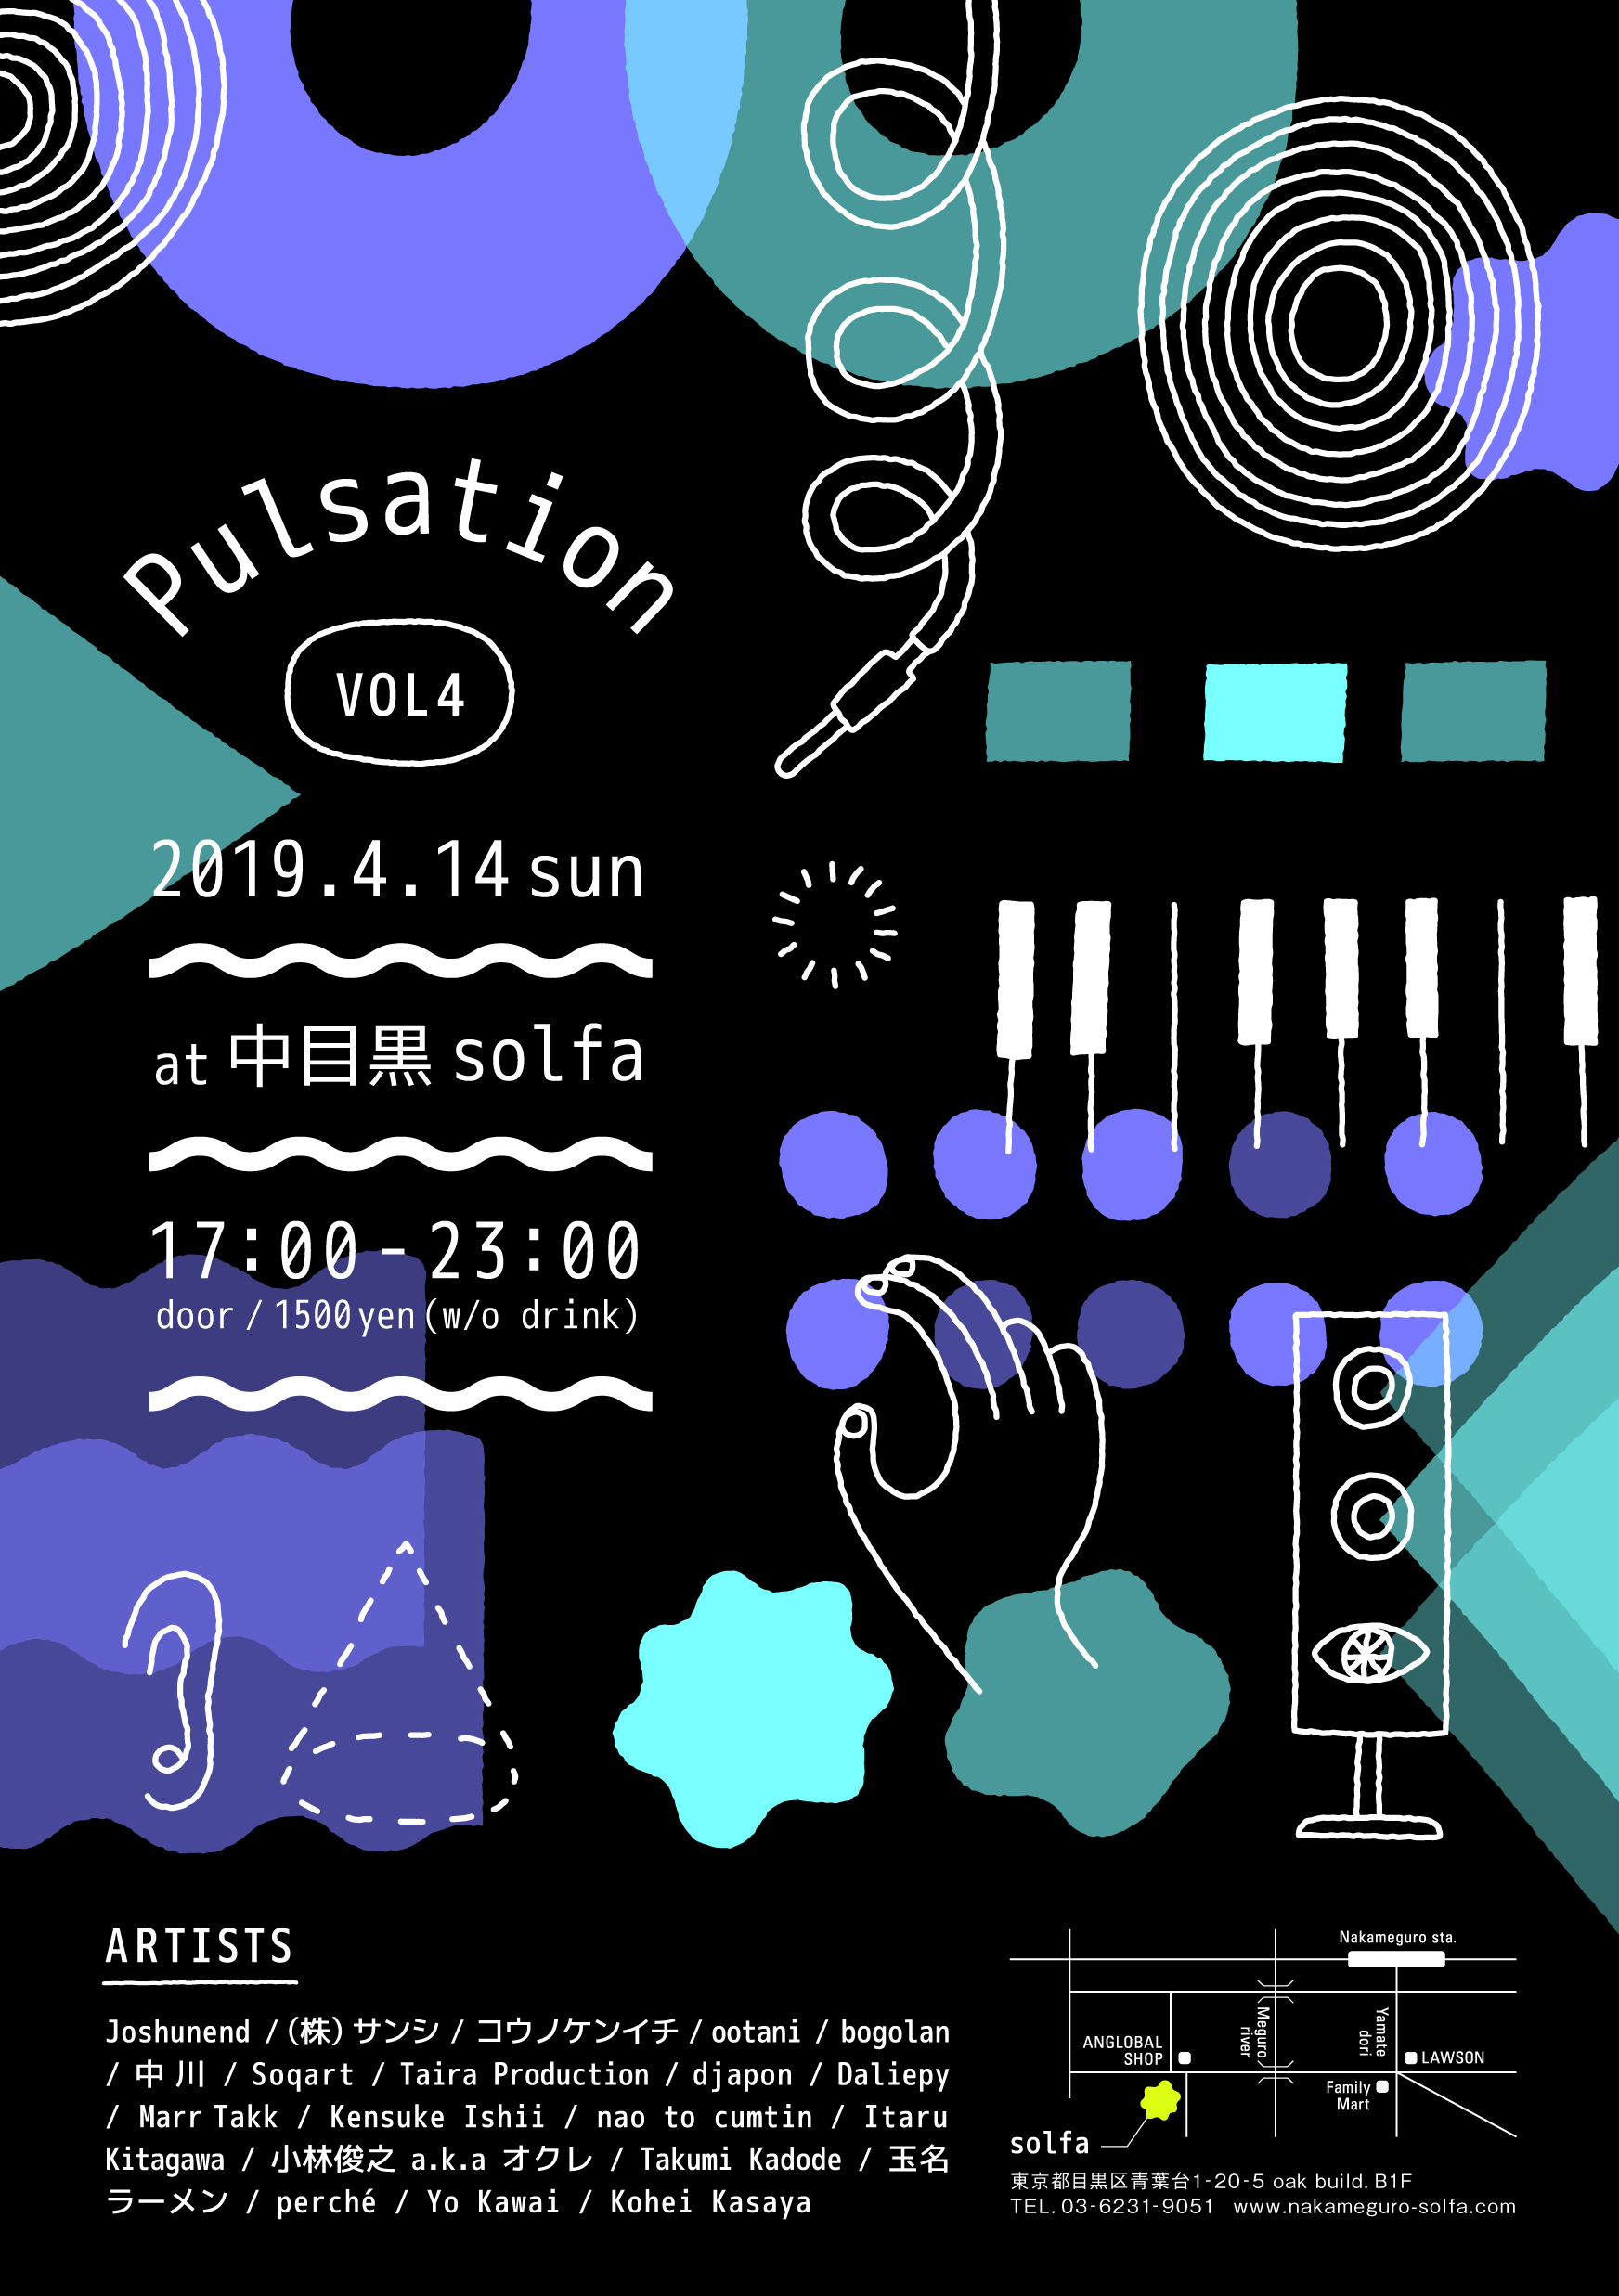 Pulsation vol.4